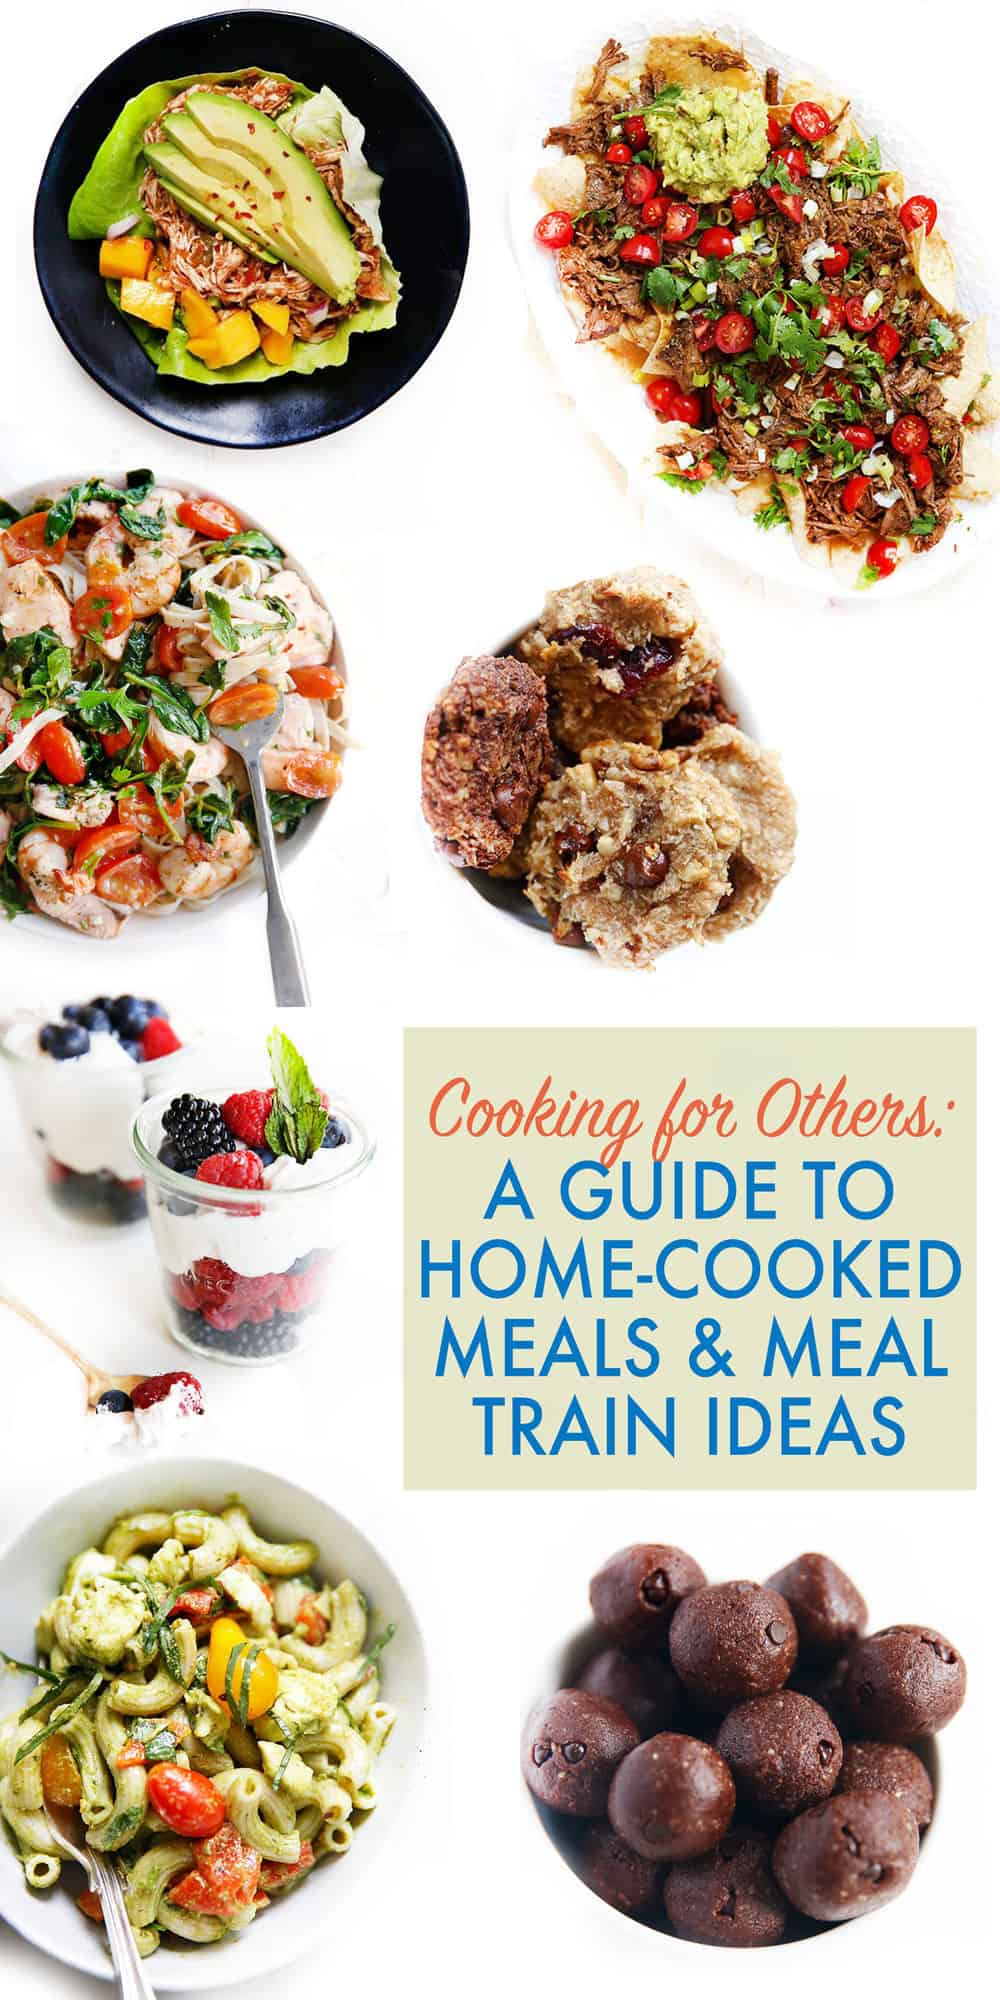 Cooking for Others: A Guide to Home-Cooked Meals & Meal Train Ideas - Lexi's Clean Kitchen